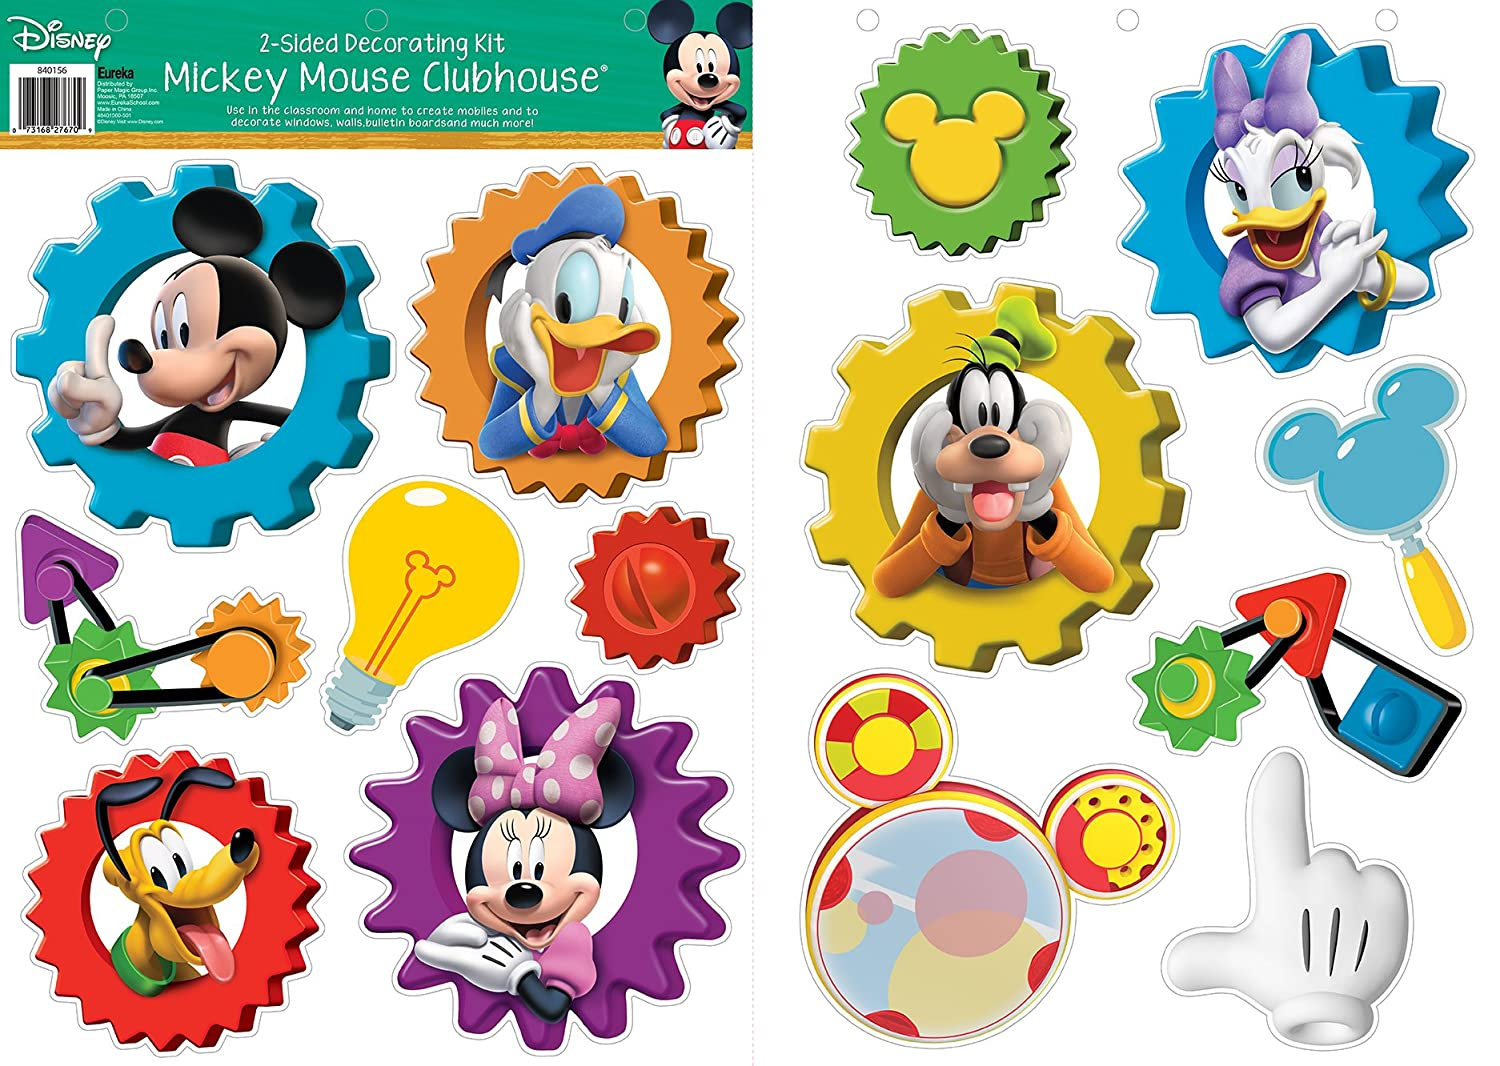 Eureka Mickey Mouse Clubhouse 2-Sided Deco Kits (840156)